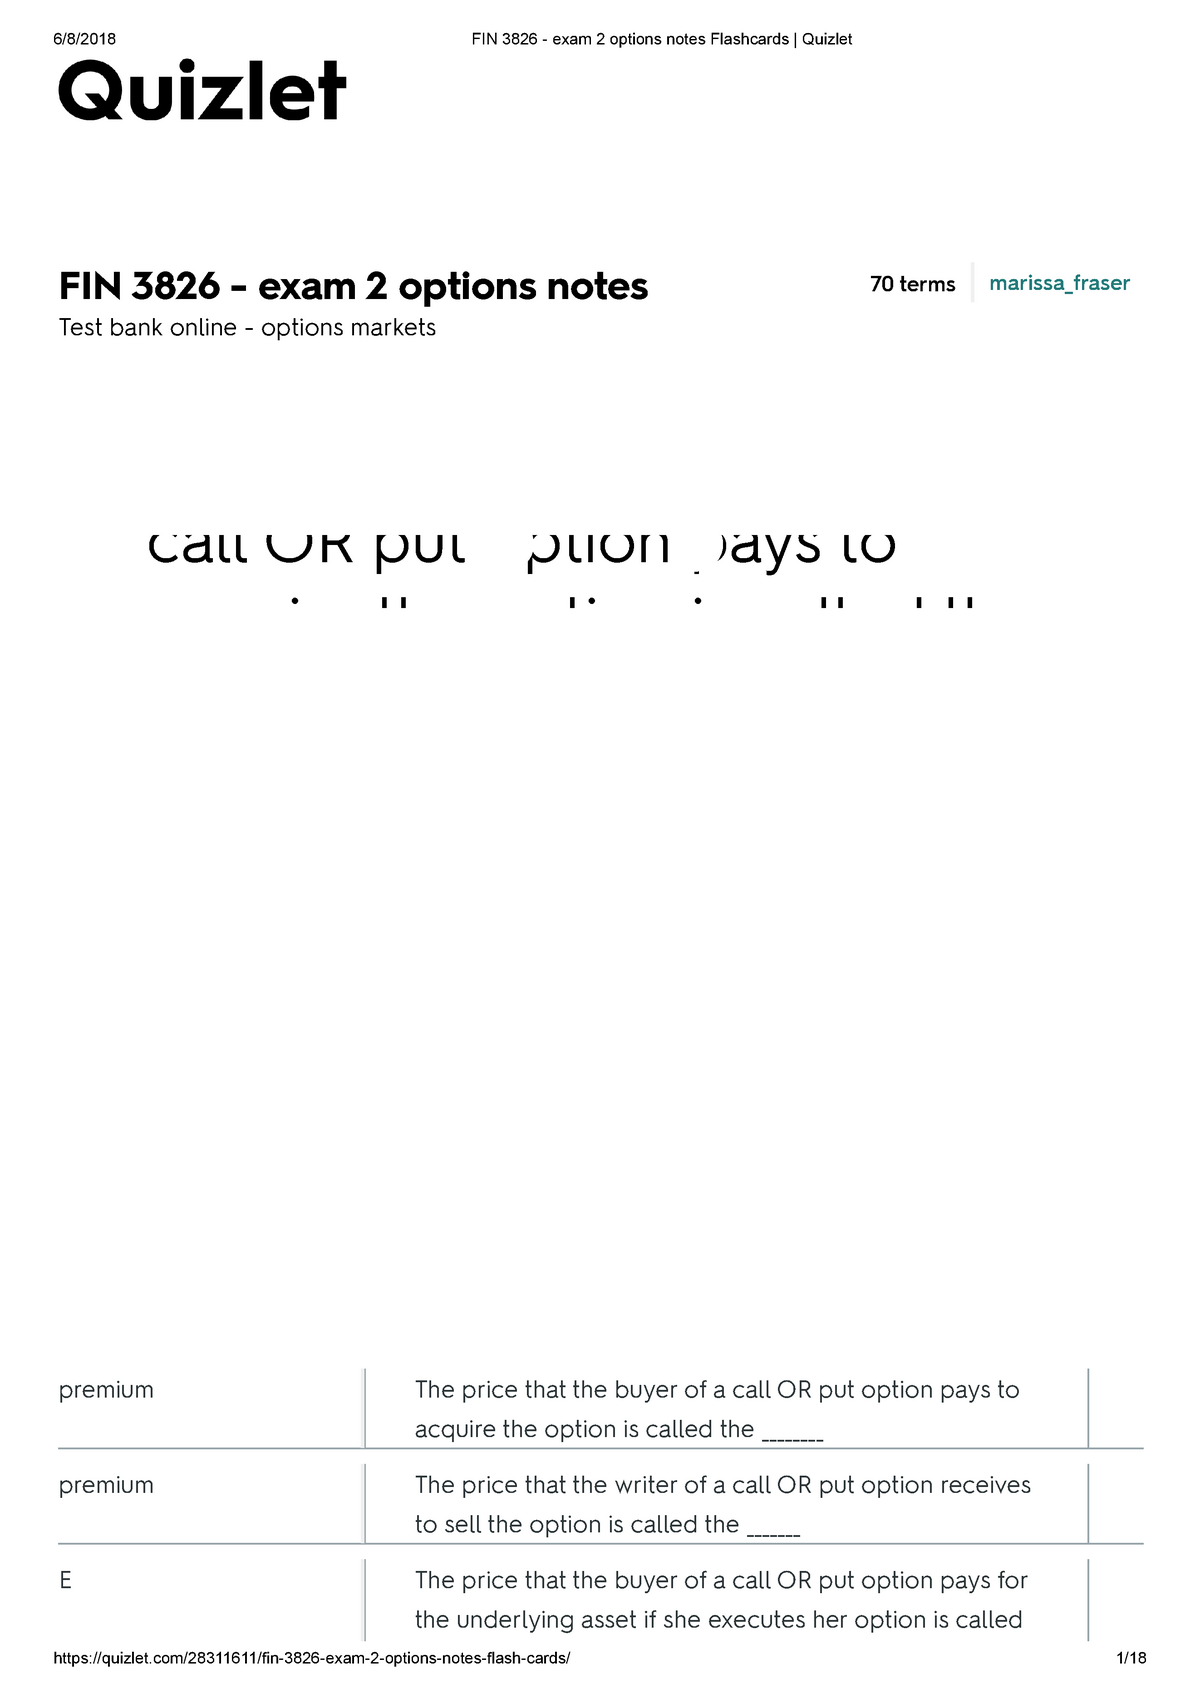 FIN 3826 - exam 2 options notes Flashcards Quizlet - 305228